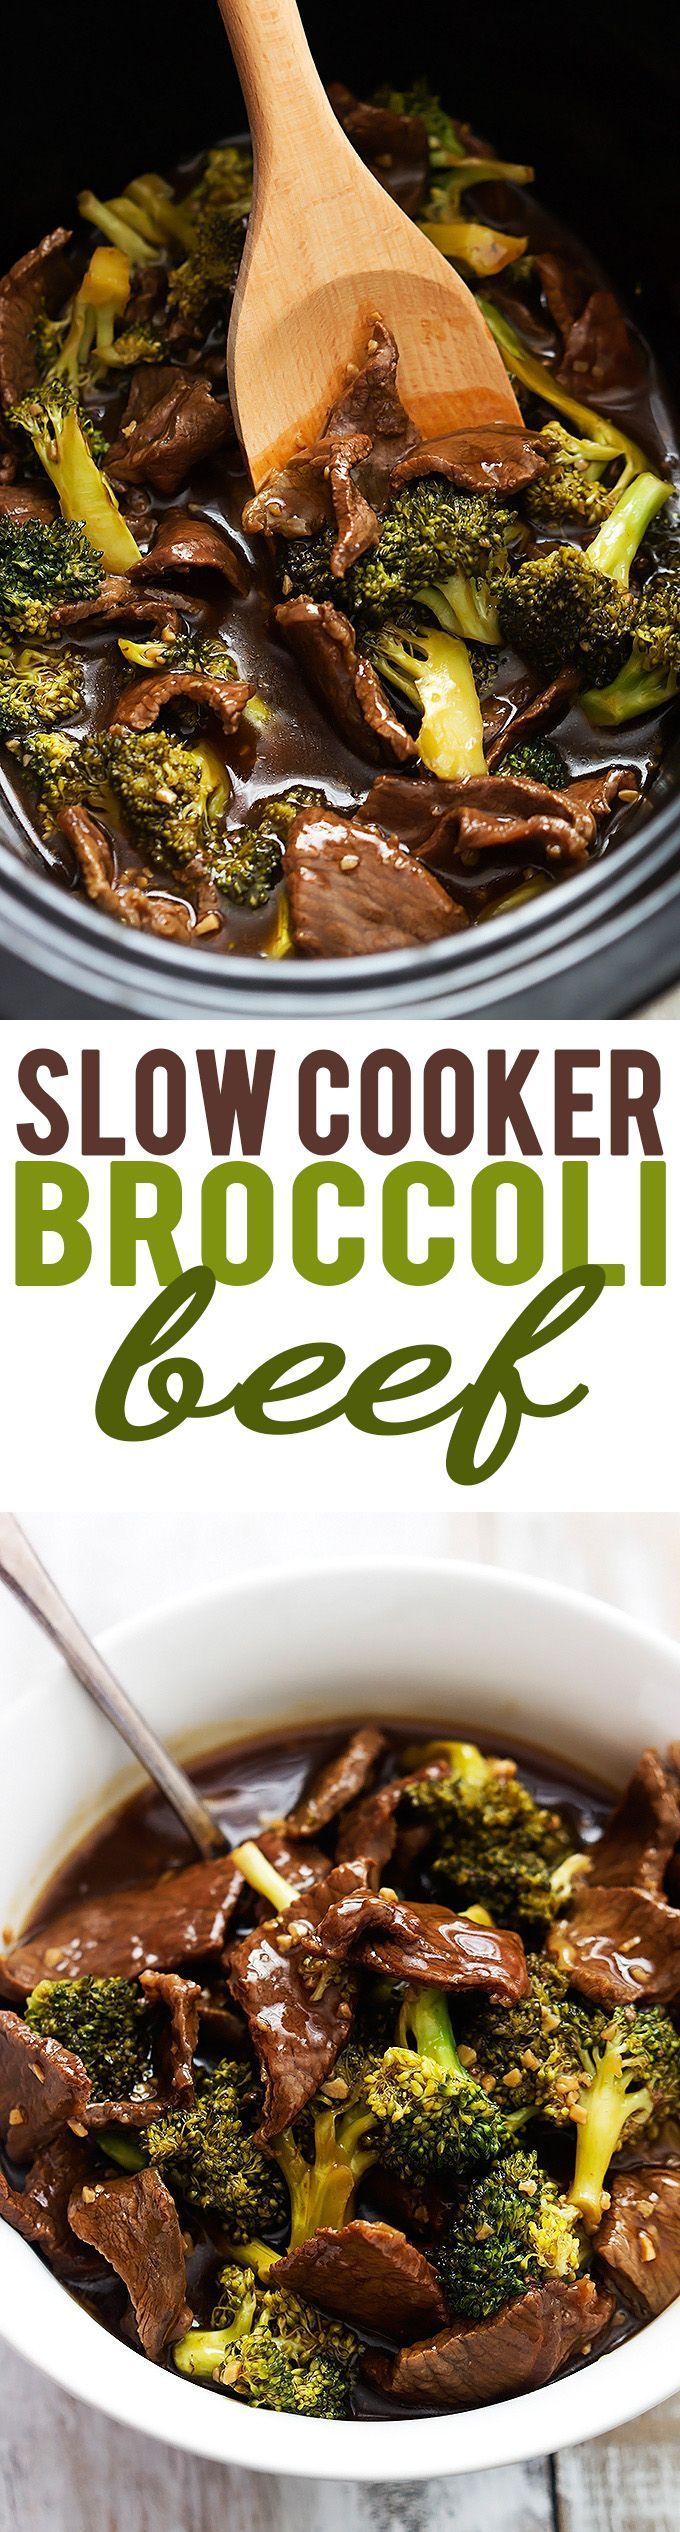 Super Easy Slow Cooker Broccoli Beef The Sauce Is Amazing So Much Better Tasting And